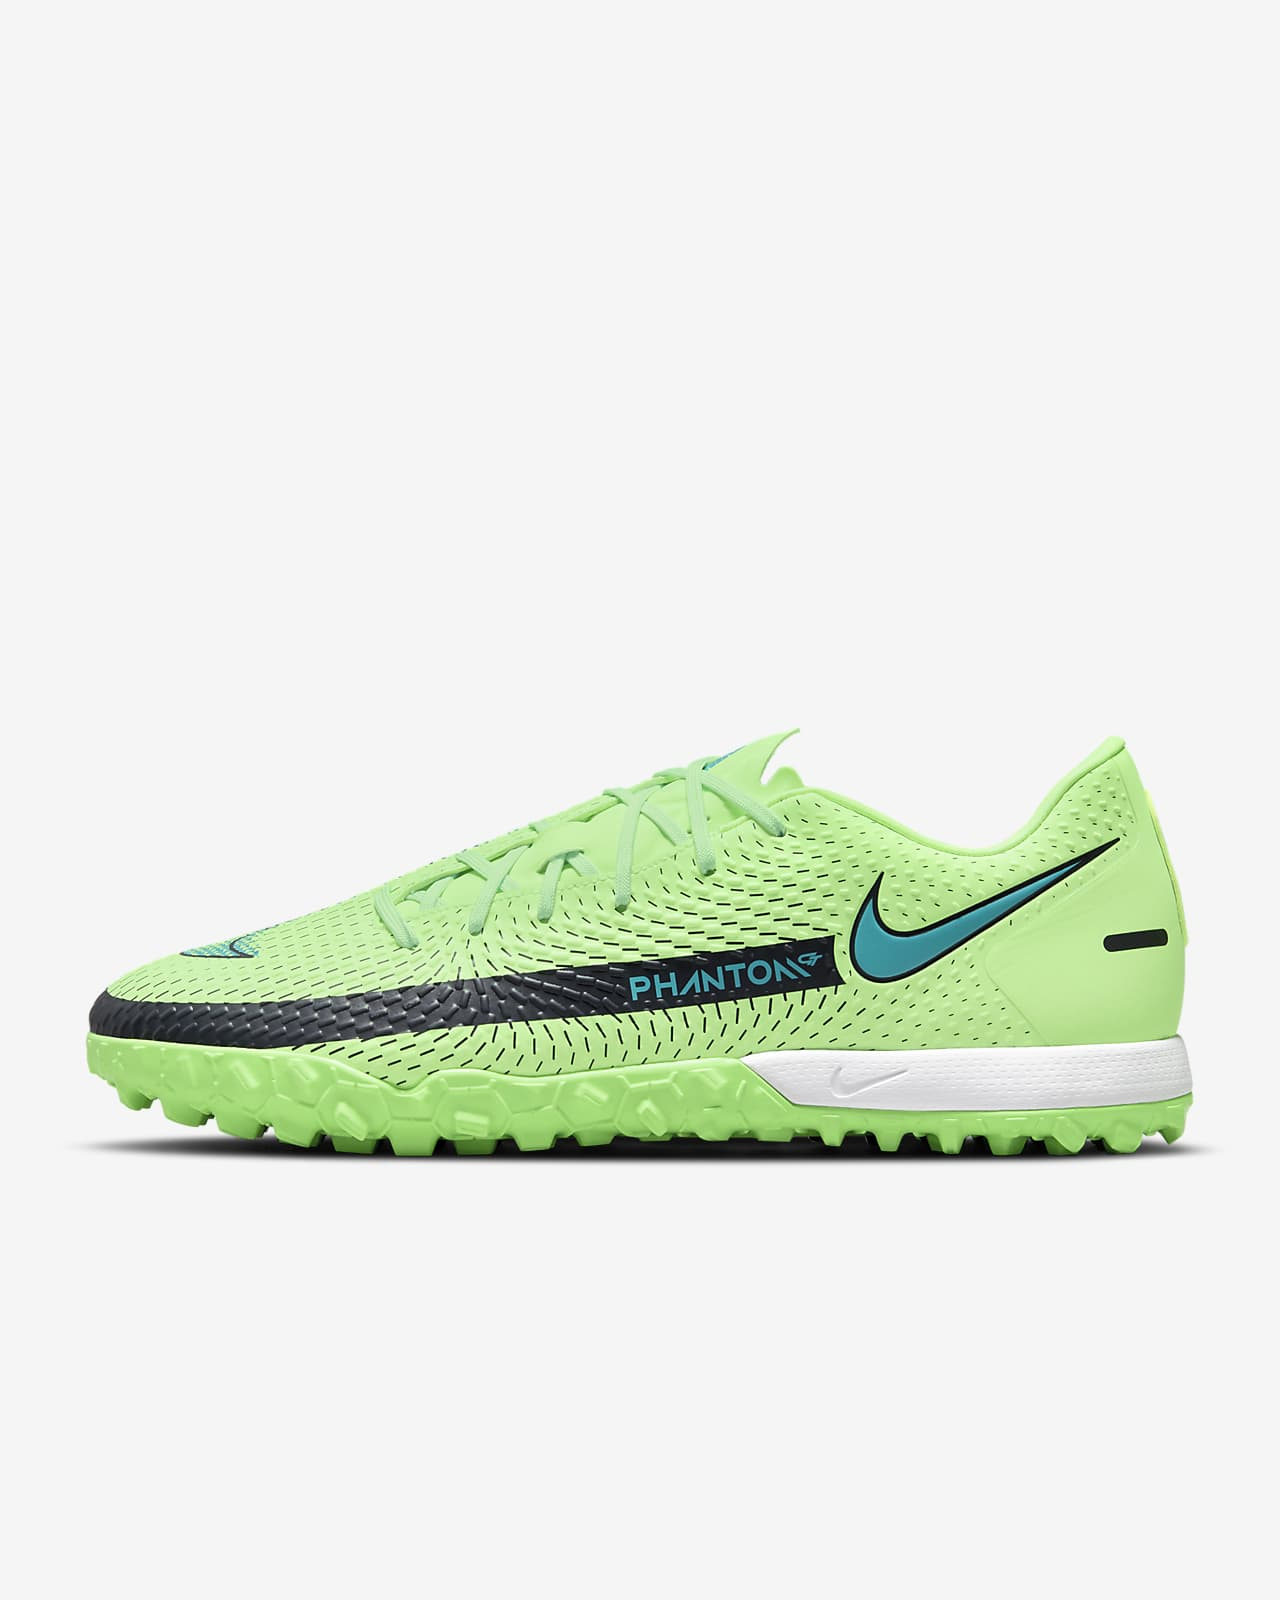 Chaussure de football pour surface synthétique Nike Phantom GT Academy TF